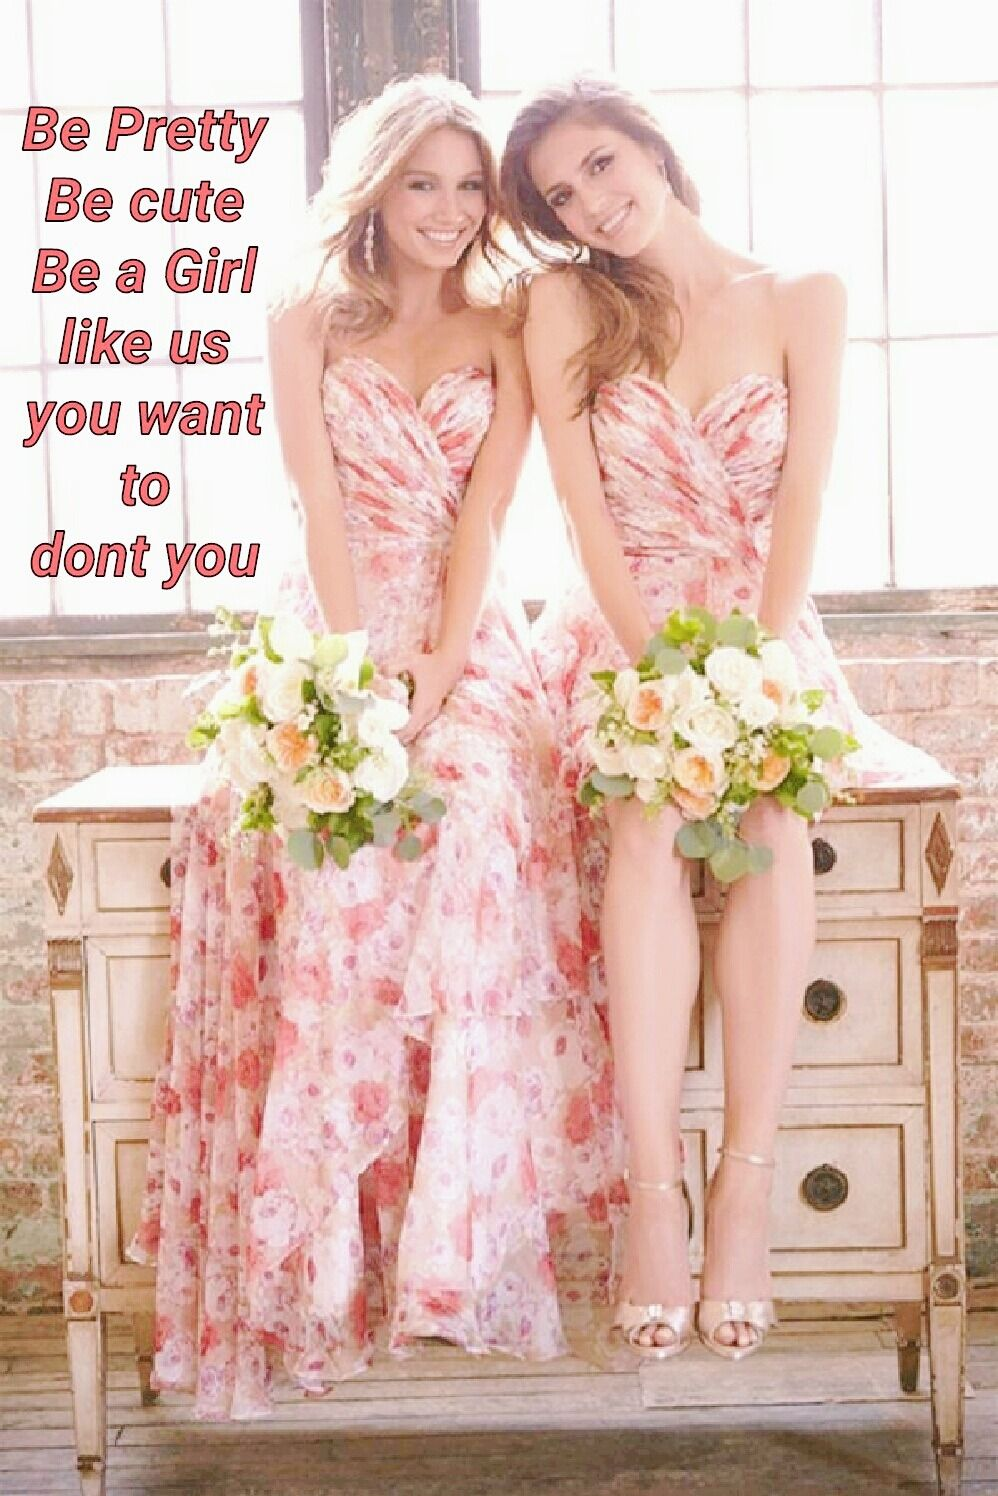 LouiseLonging | Girls we are Girls (Quotes) | Pinterest